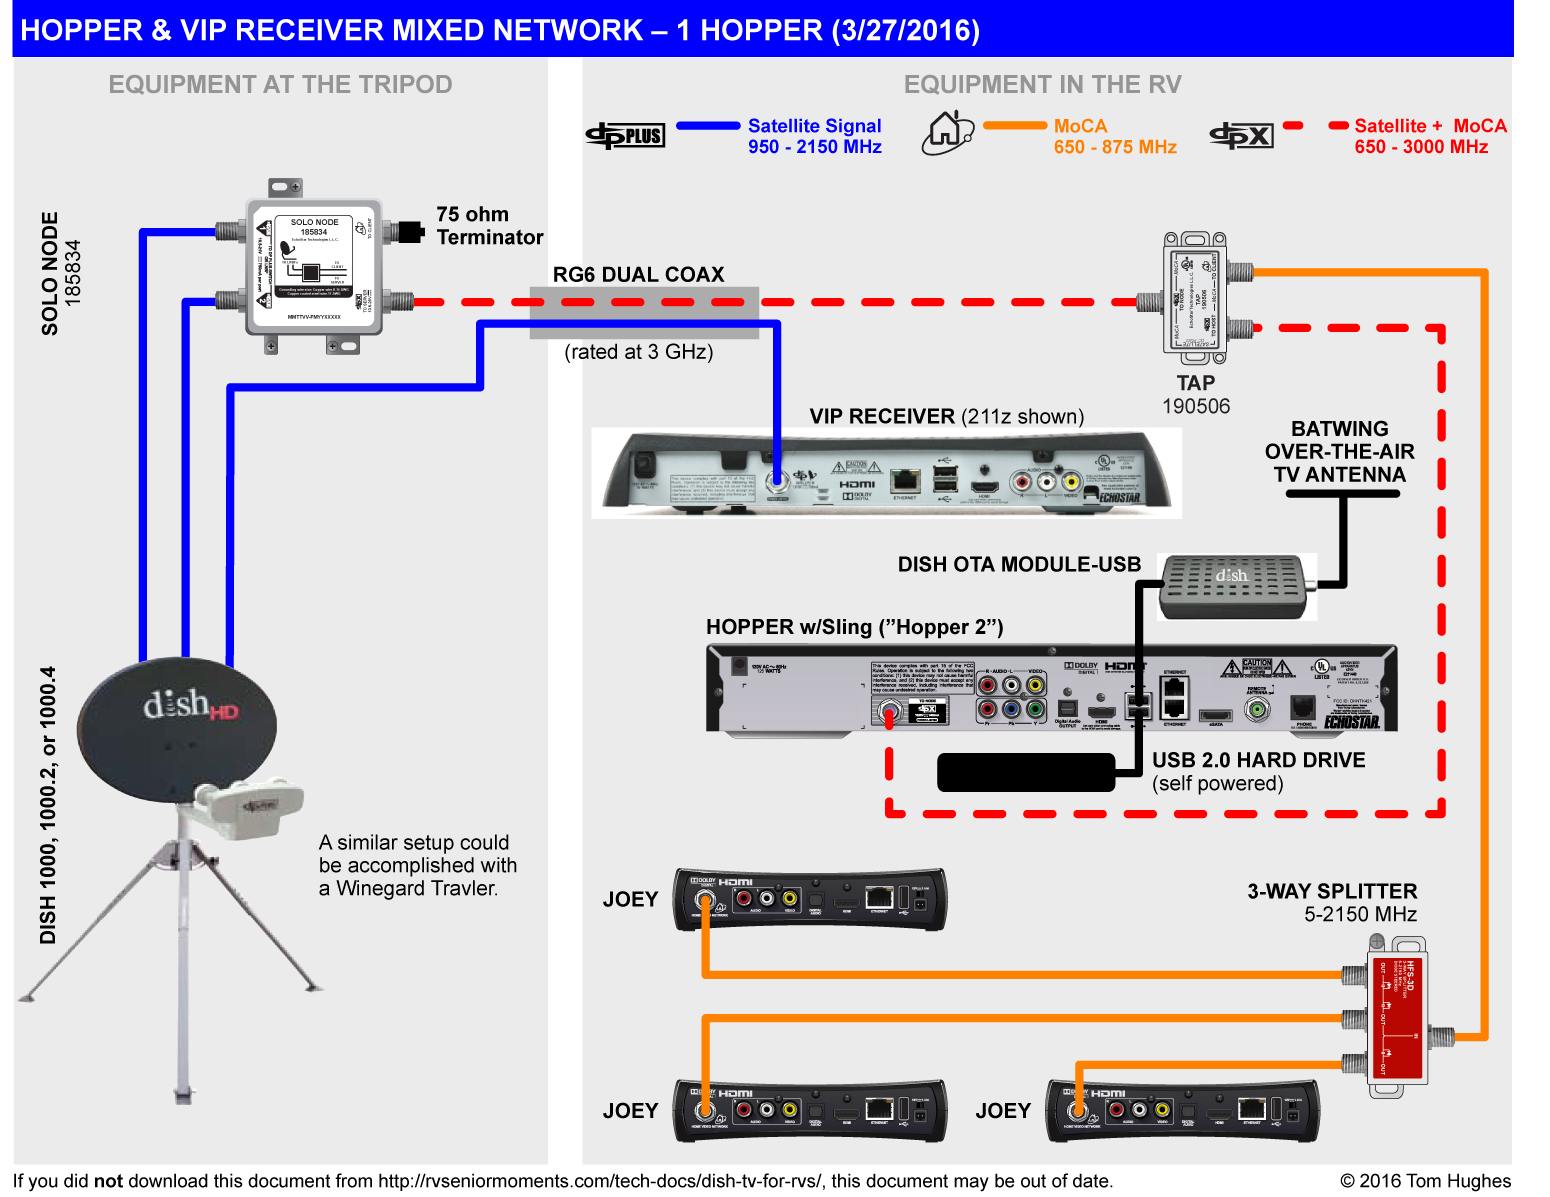 winegard satellite wiring diagram dish network 322 wiring diagram dish wiring diagrams dish network receiver wiring diagram at t wiring